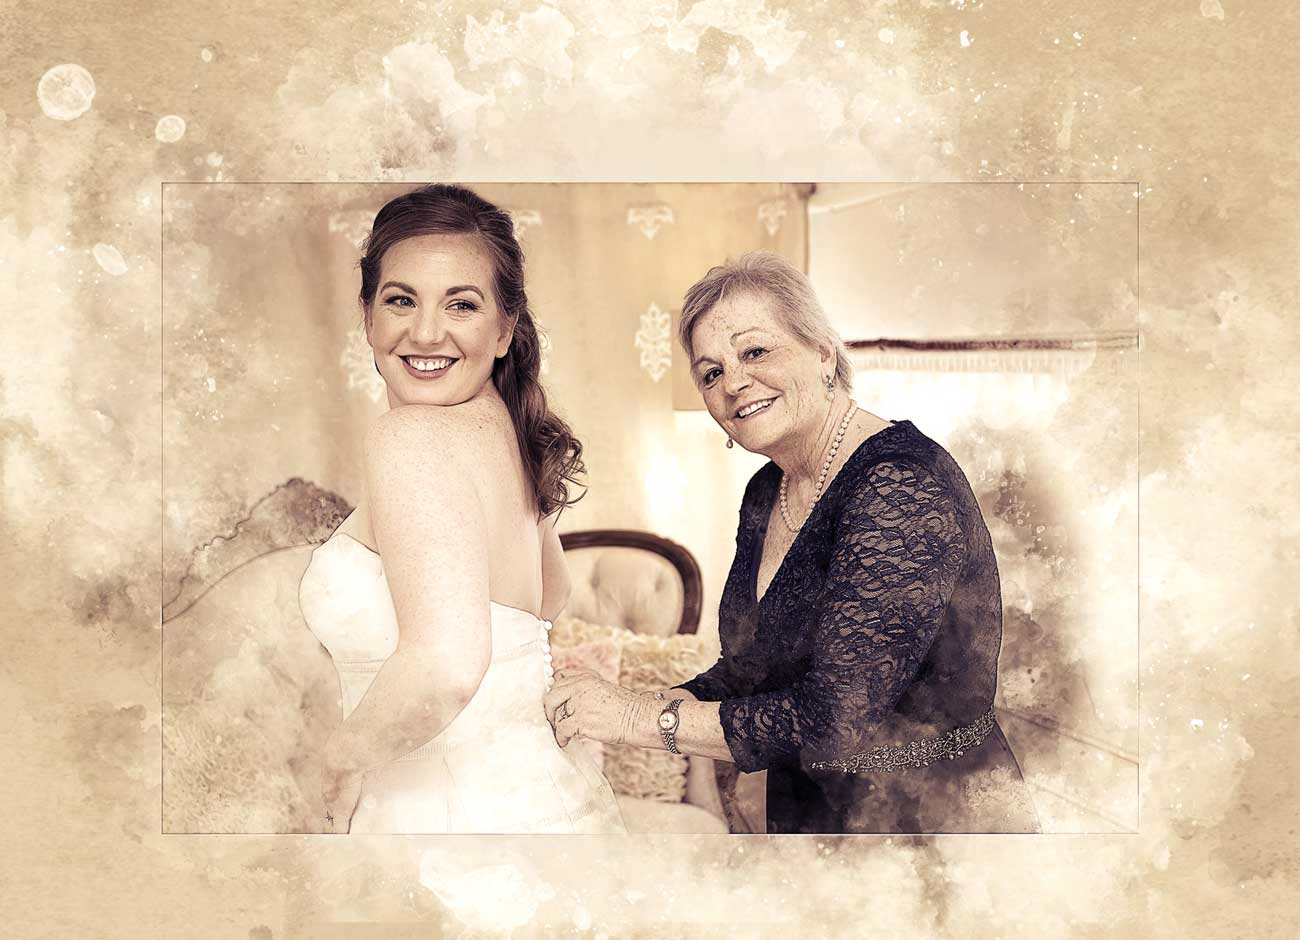 a daughter in a wedding dress poses with her mom who is buttoning the back of her dress